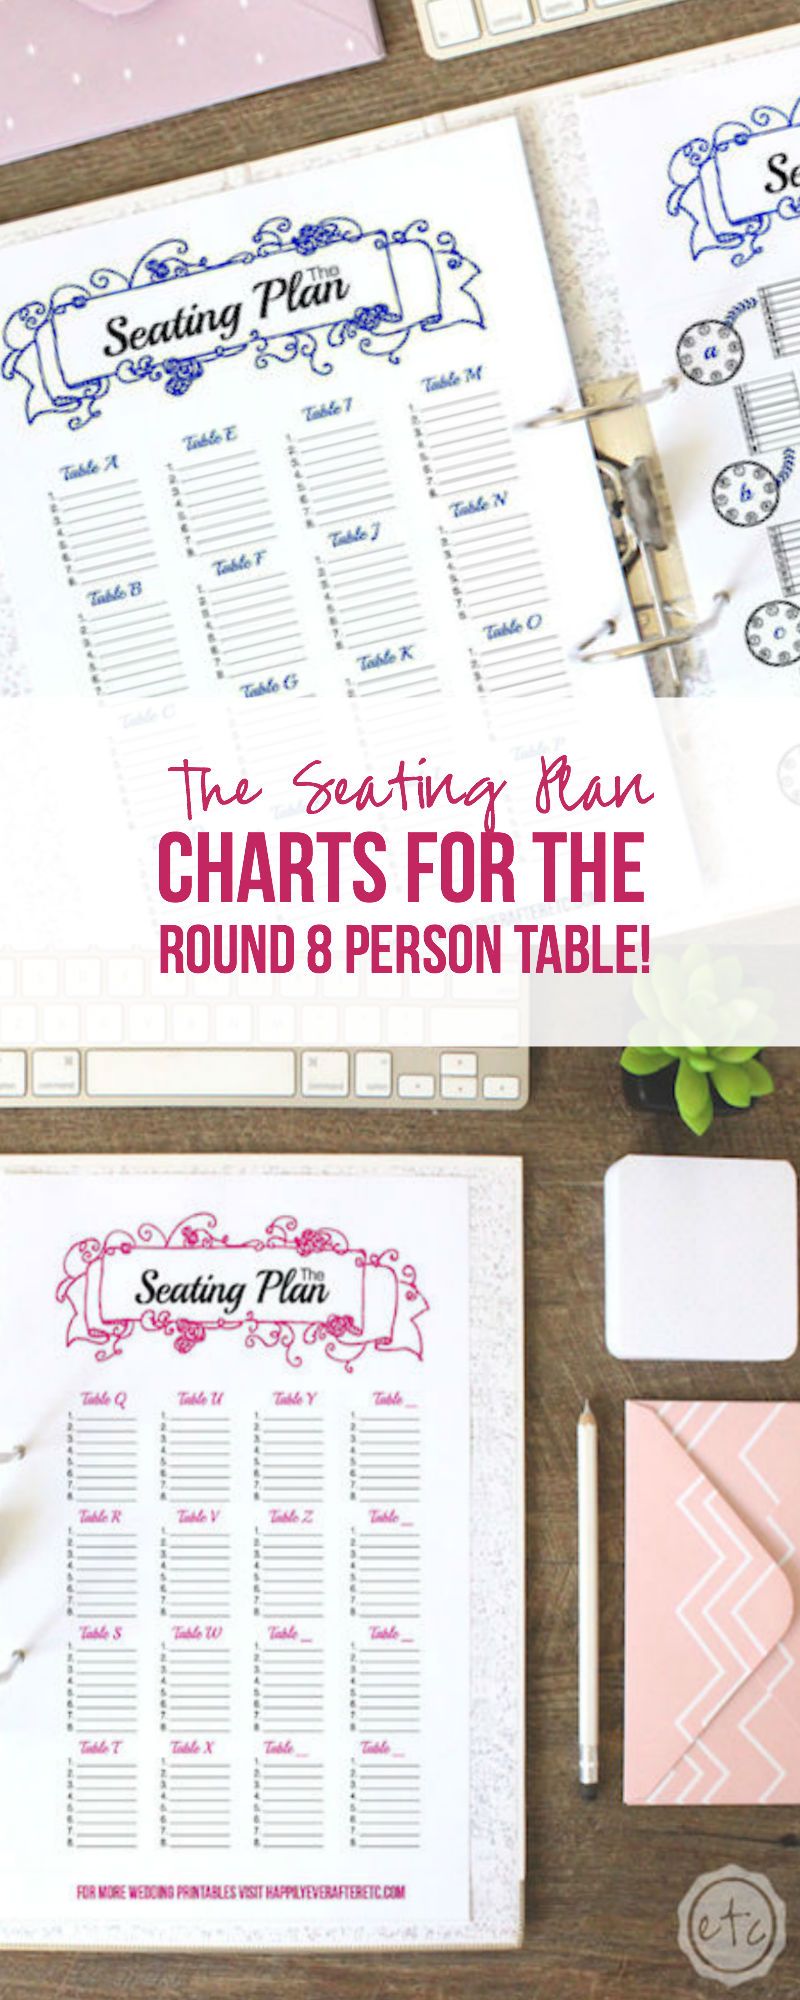 The Seating Plan: Charts for the Round Eight Person Table!